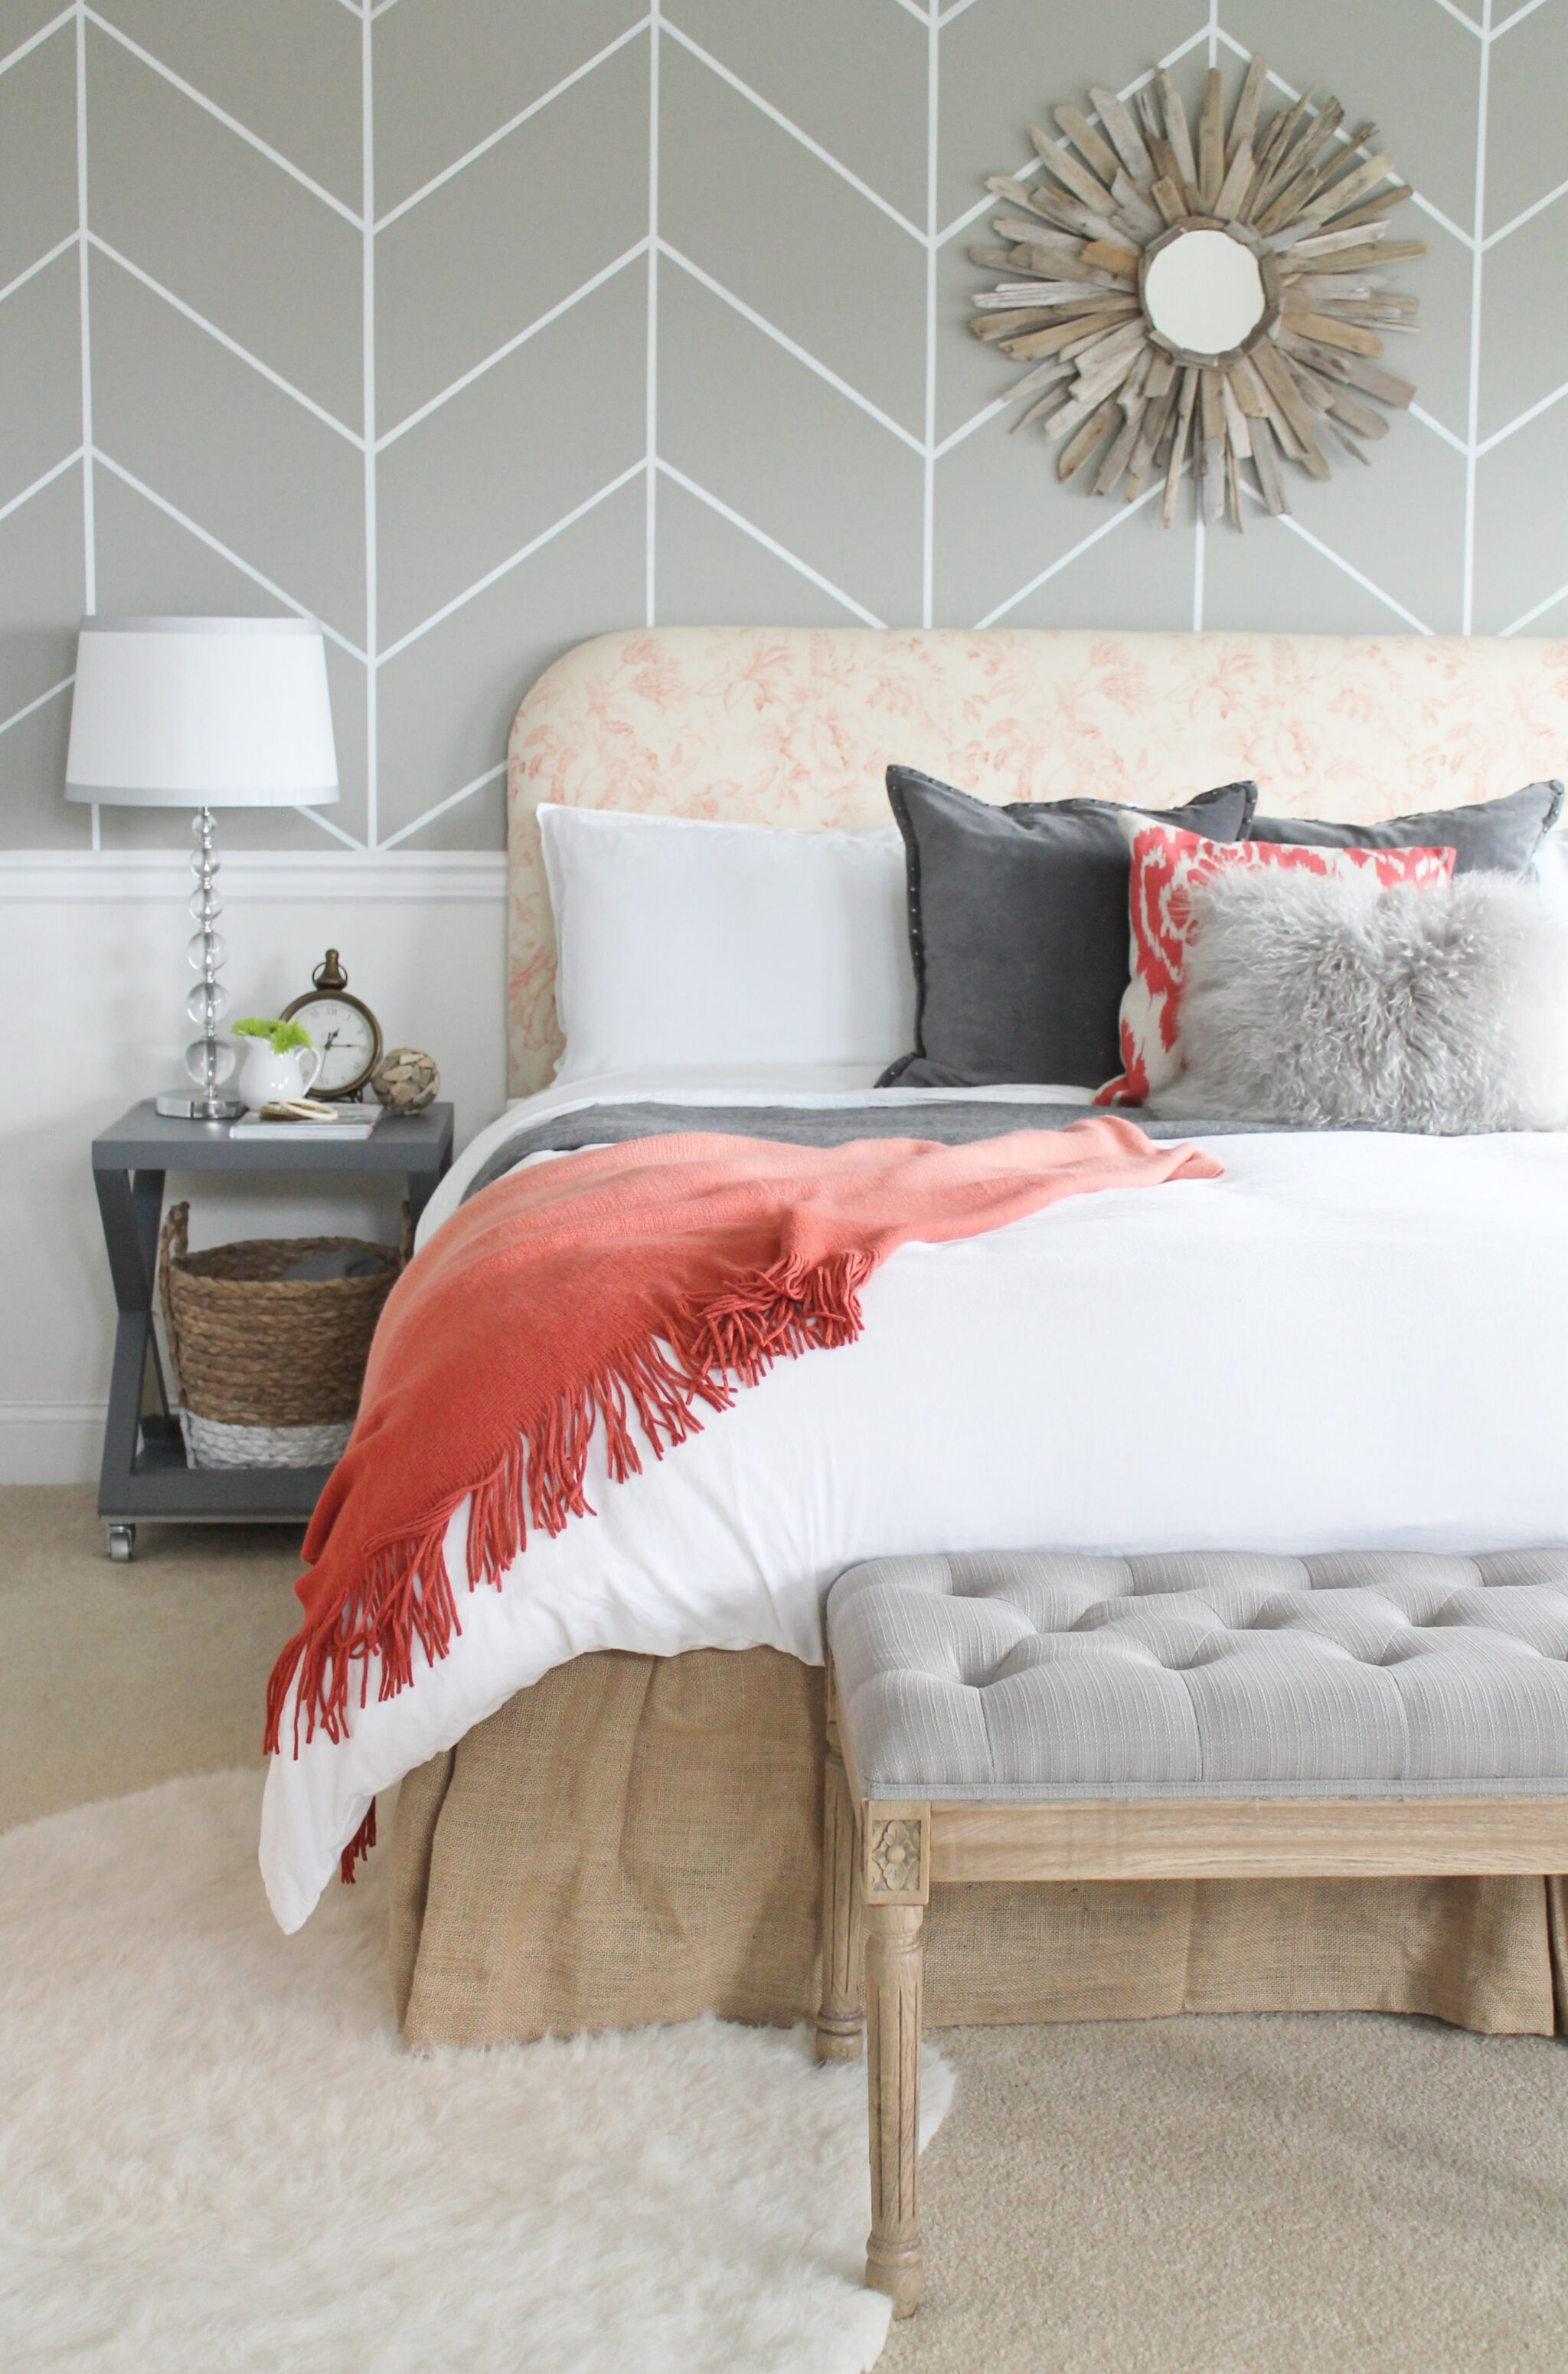 Rustic Chic Budget Friendly Master Makeover - City Farmhouse